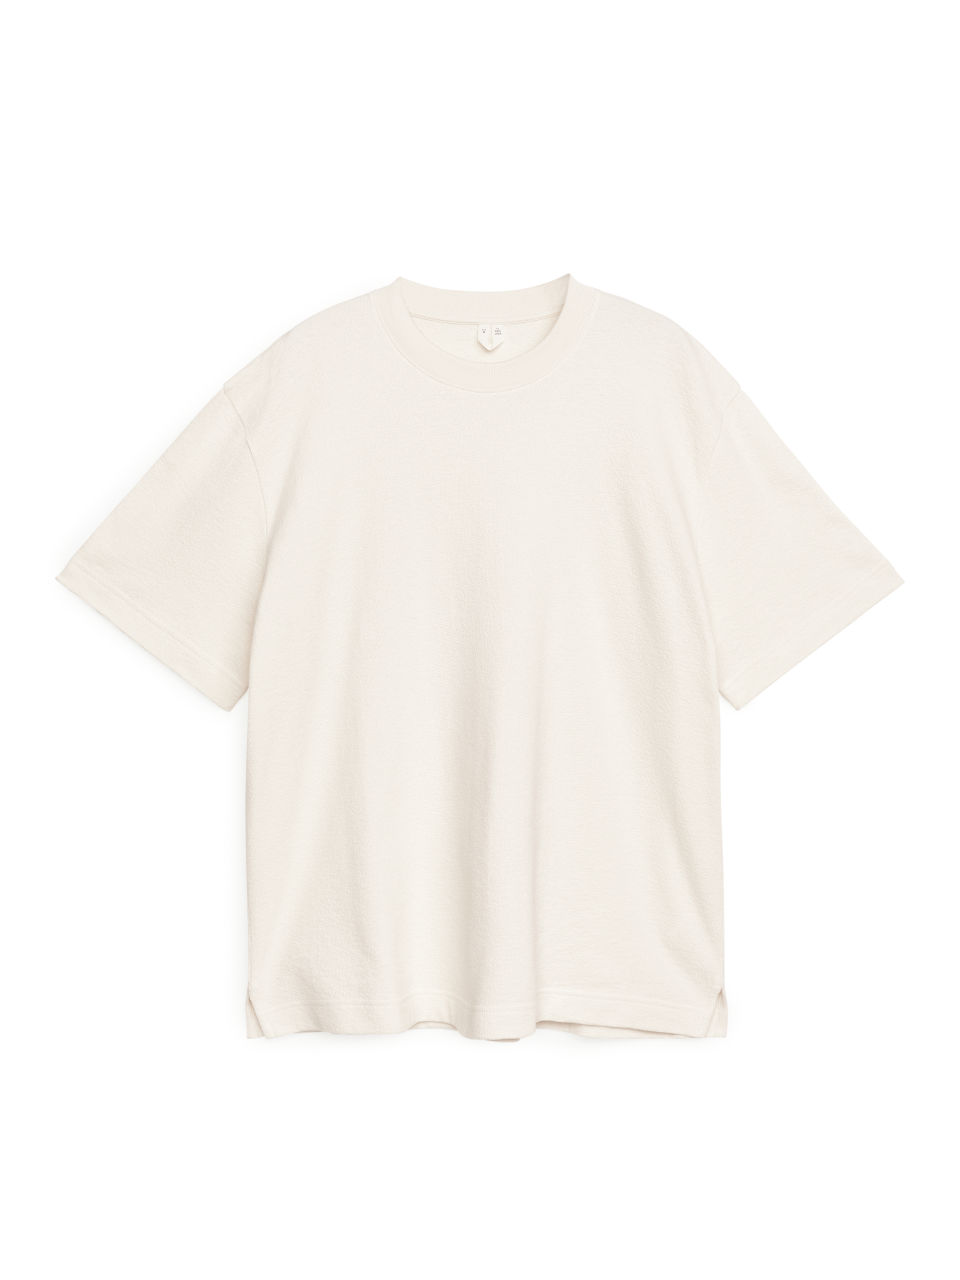 Cotton Towelling T-Shirt - White